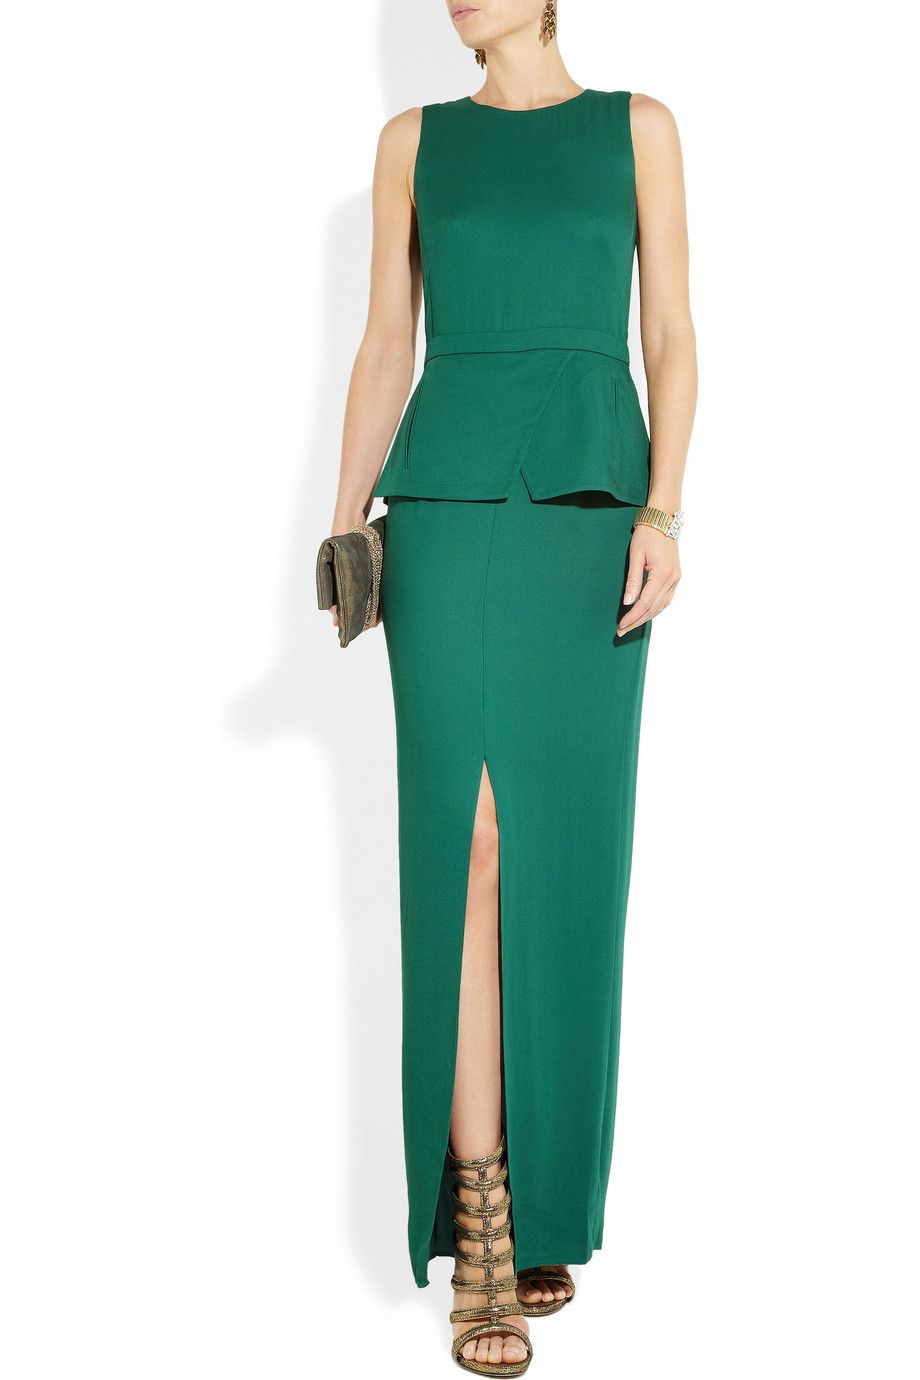 Tibi   Crepe peplum gown   Clothes   Pinterest   Peplum gown, Crepes ...